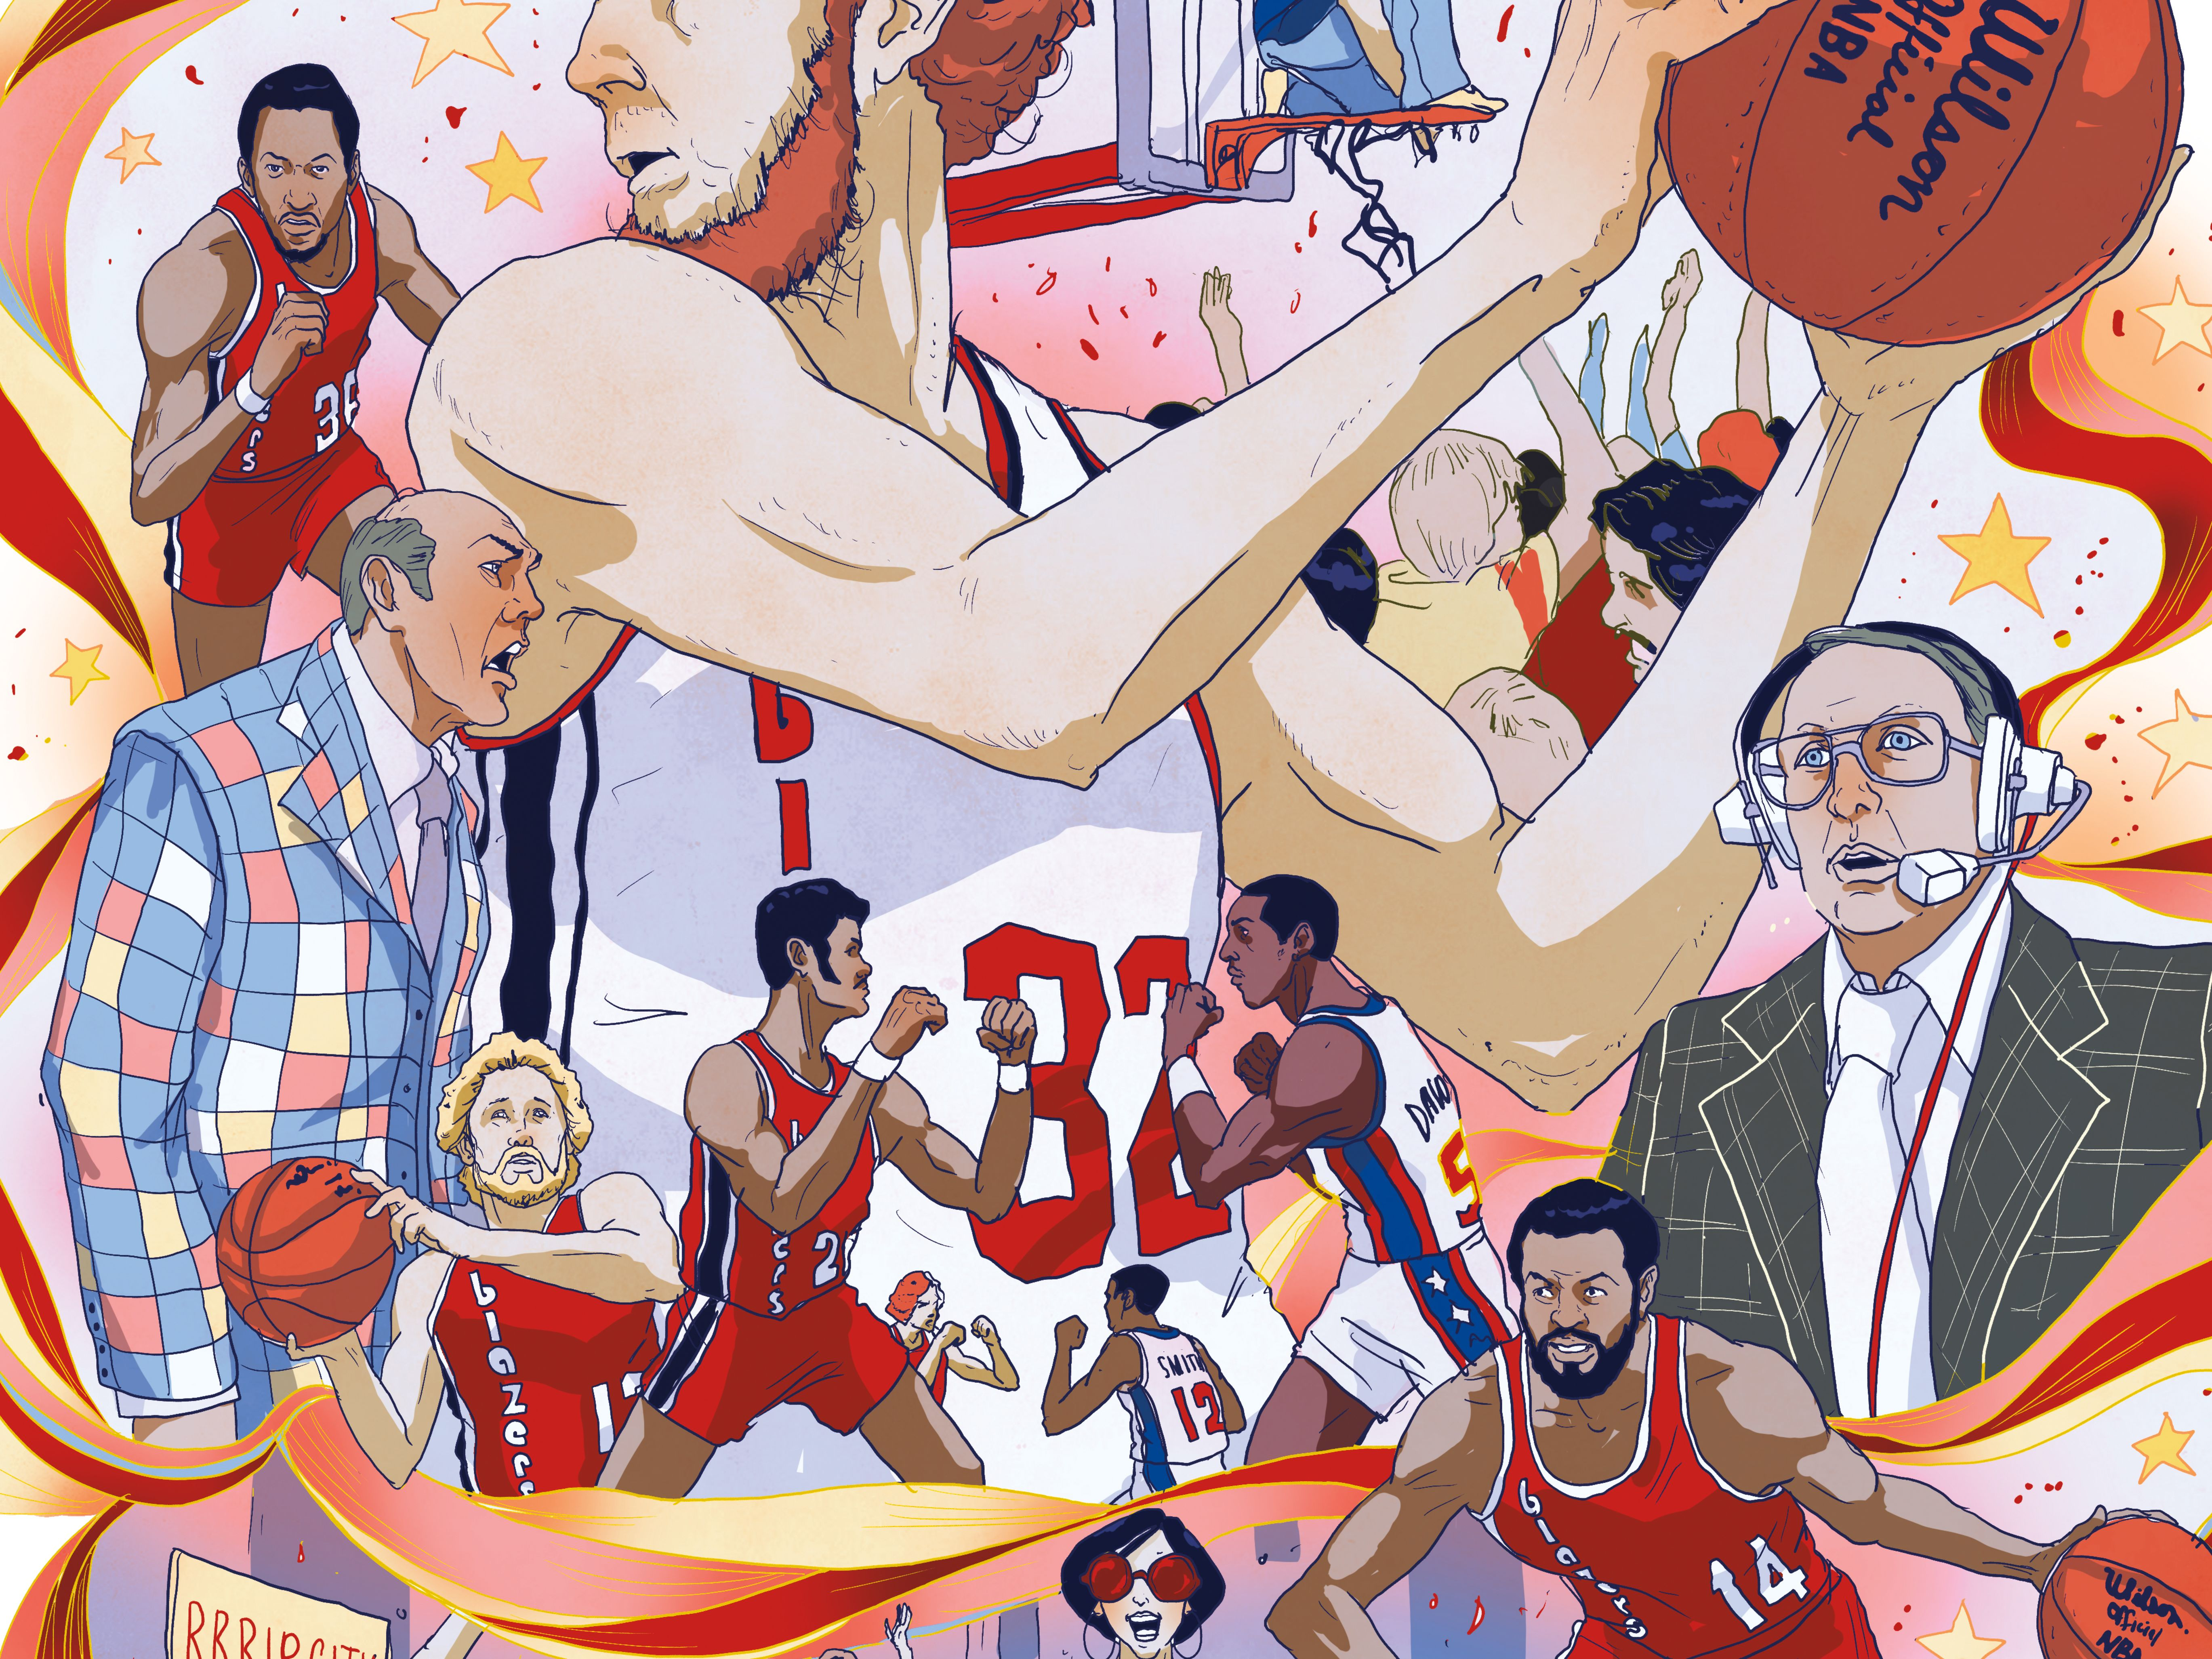 0617 trail blazers illo 2 x29ft9